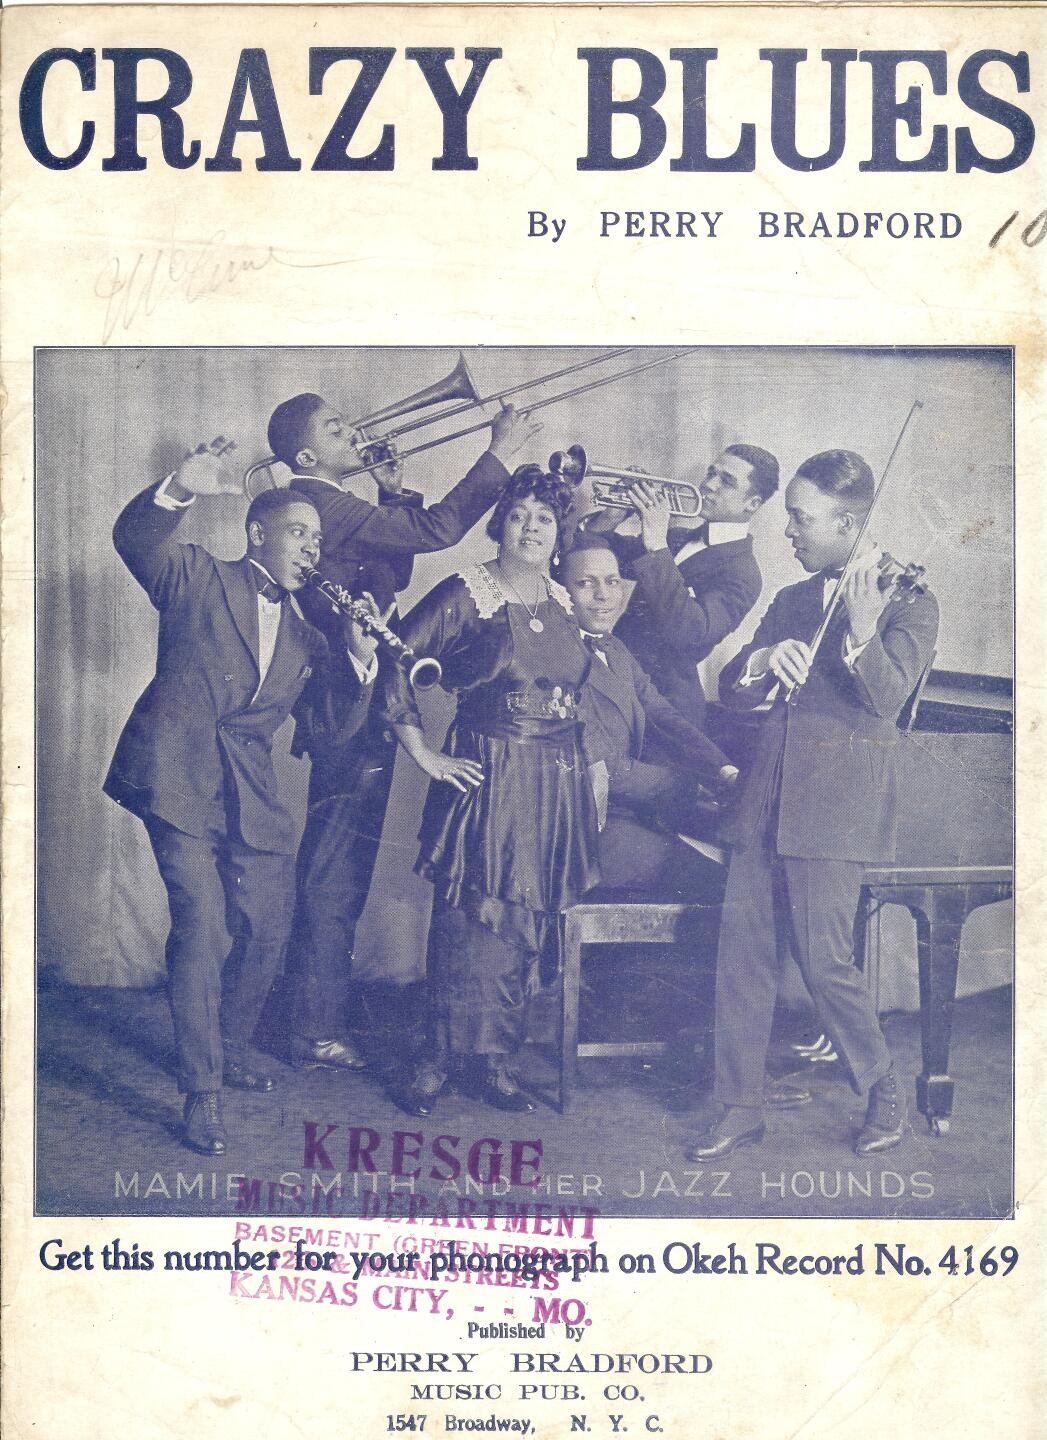 Mamie Smith, Crazy Blues, sheet music by Perry Bradford - cover.jpg